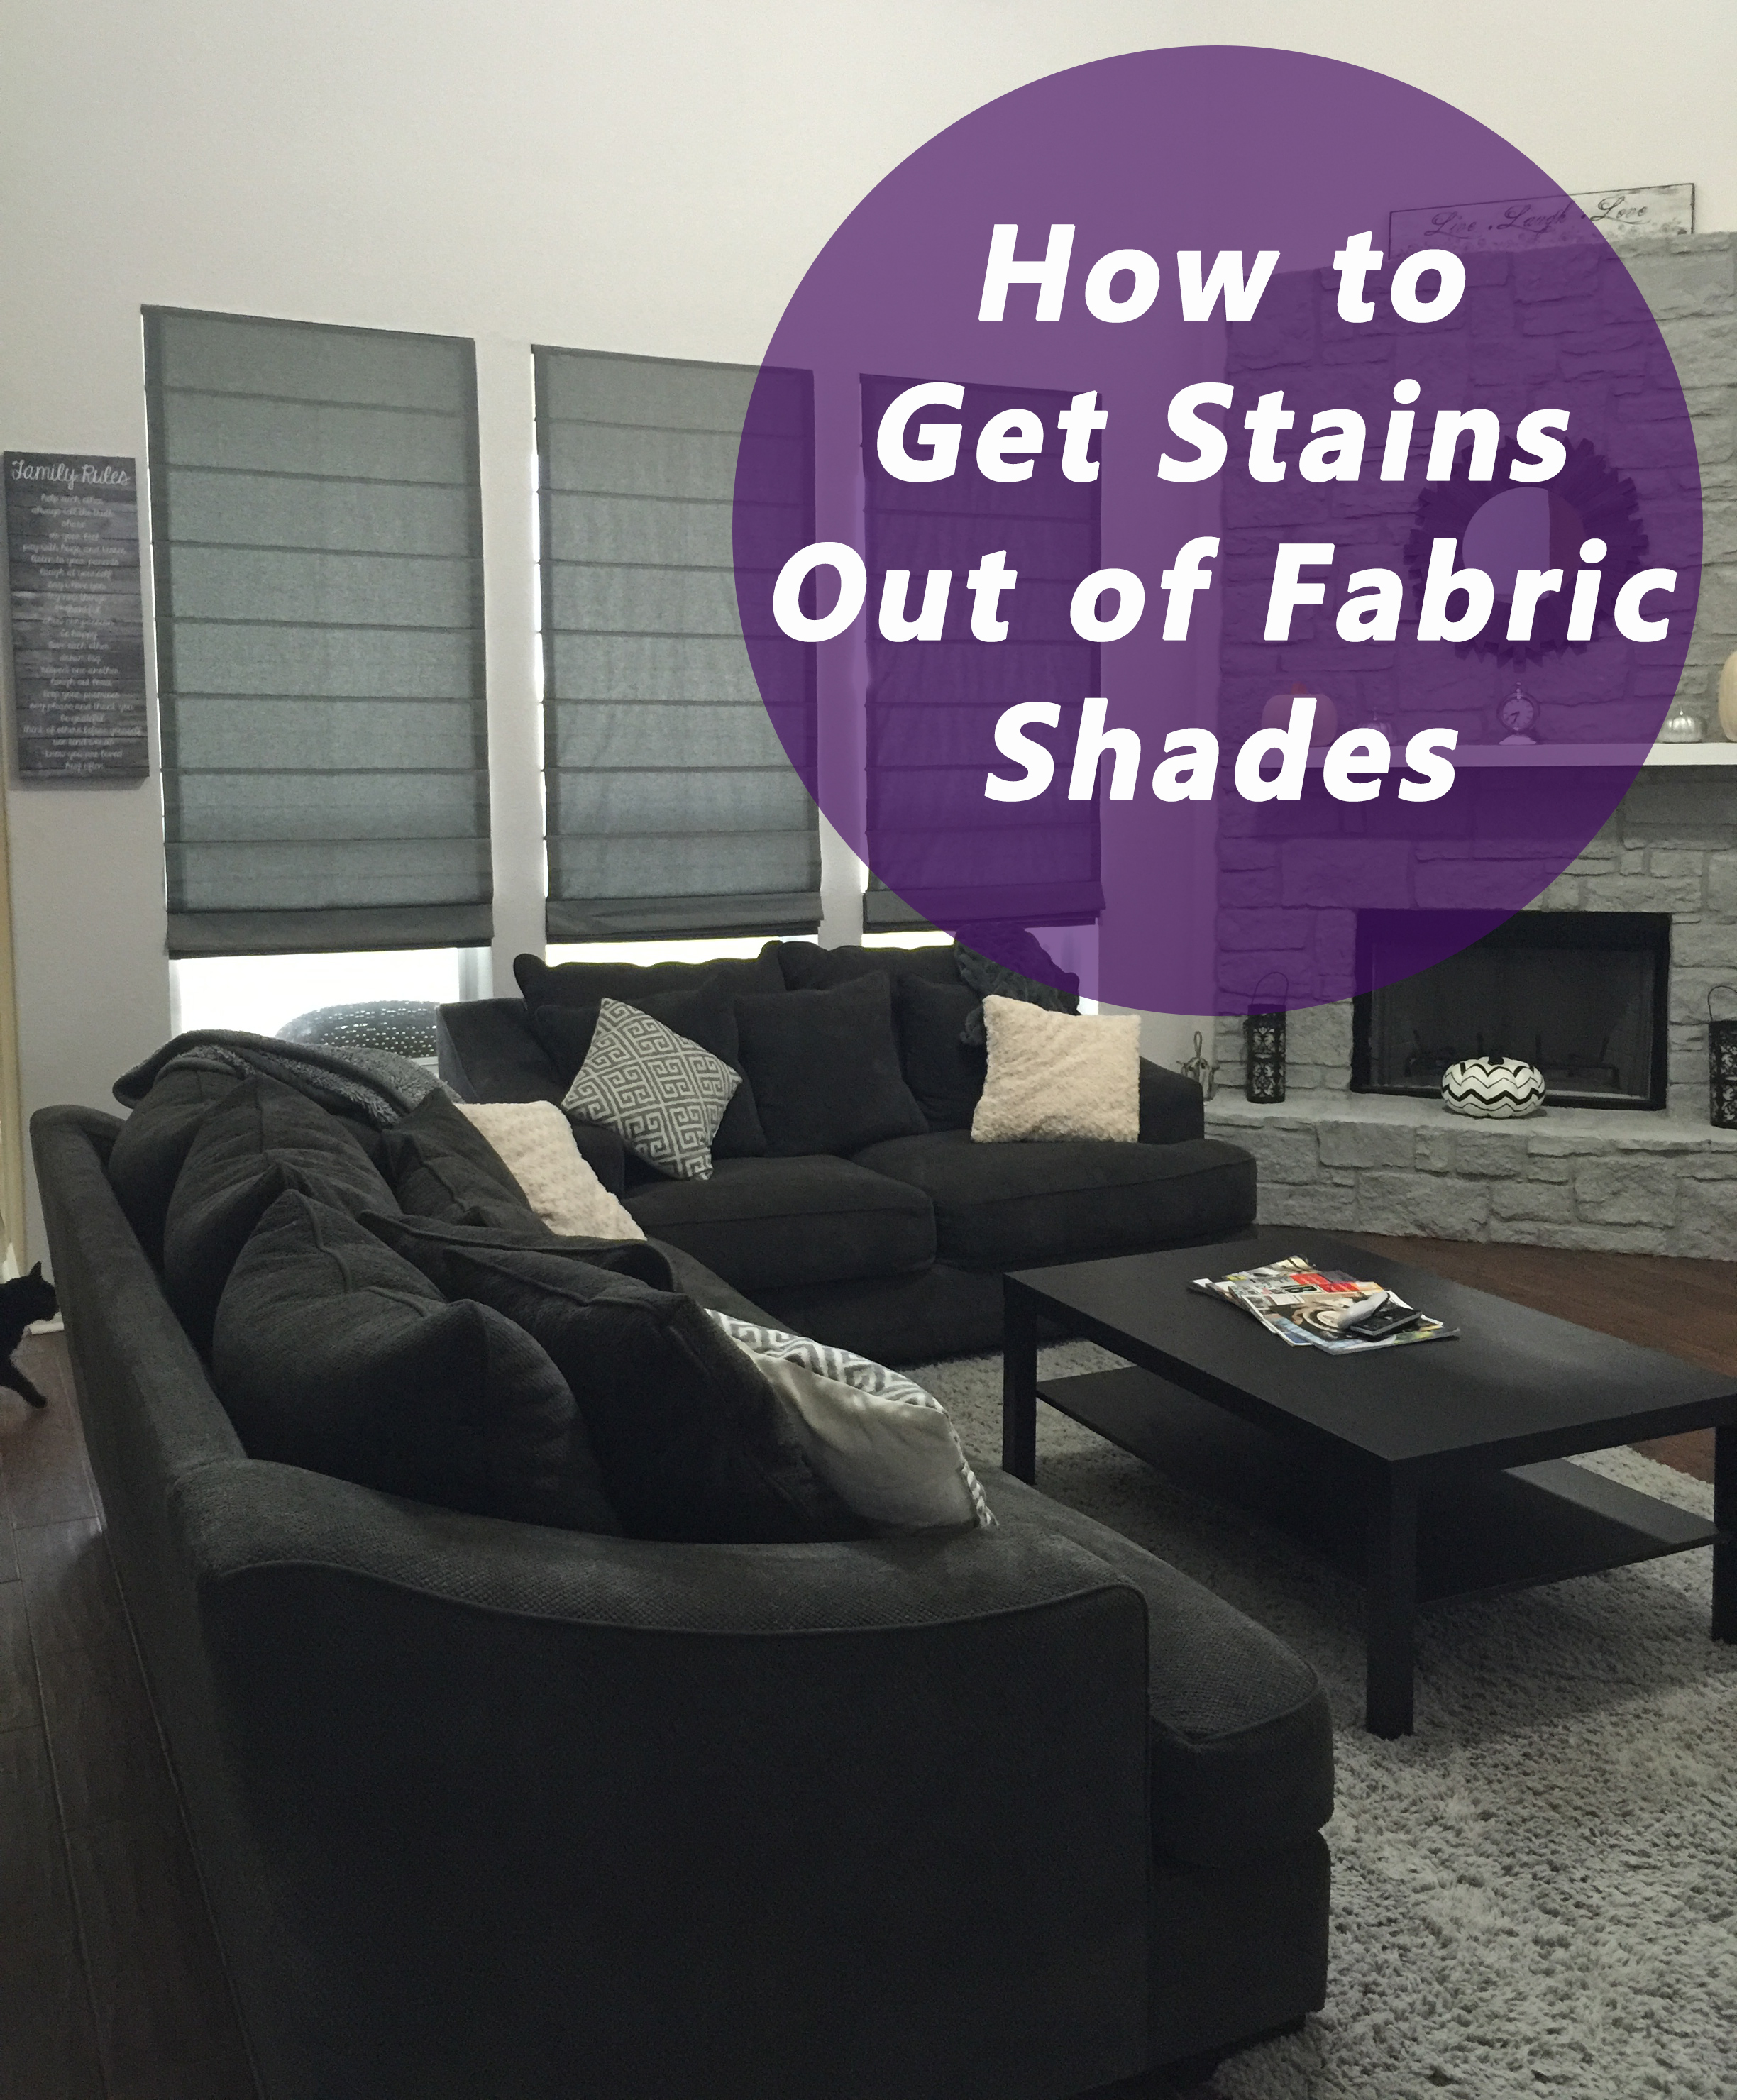 How to Get Stains Out of Fabric Shades